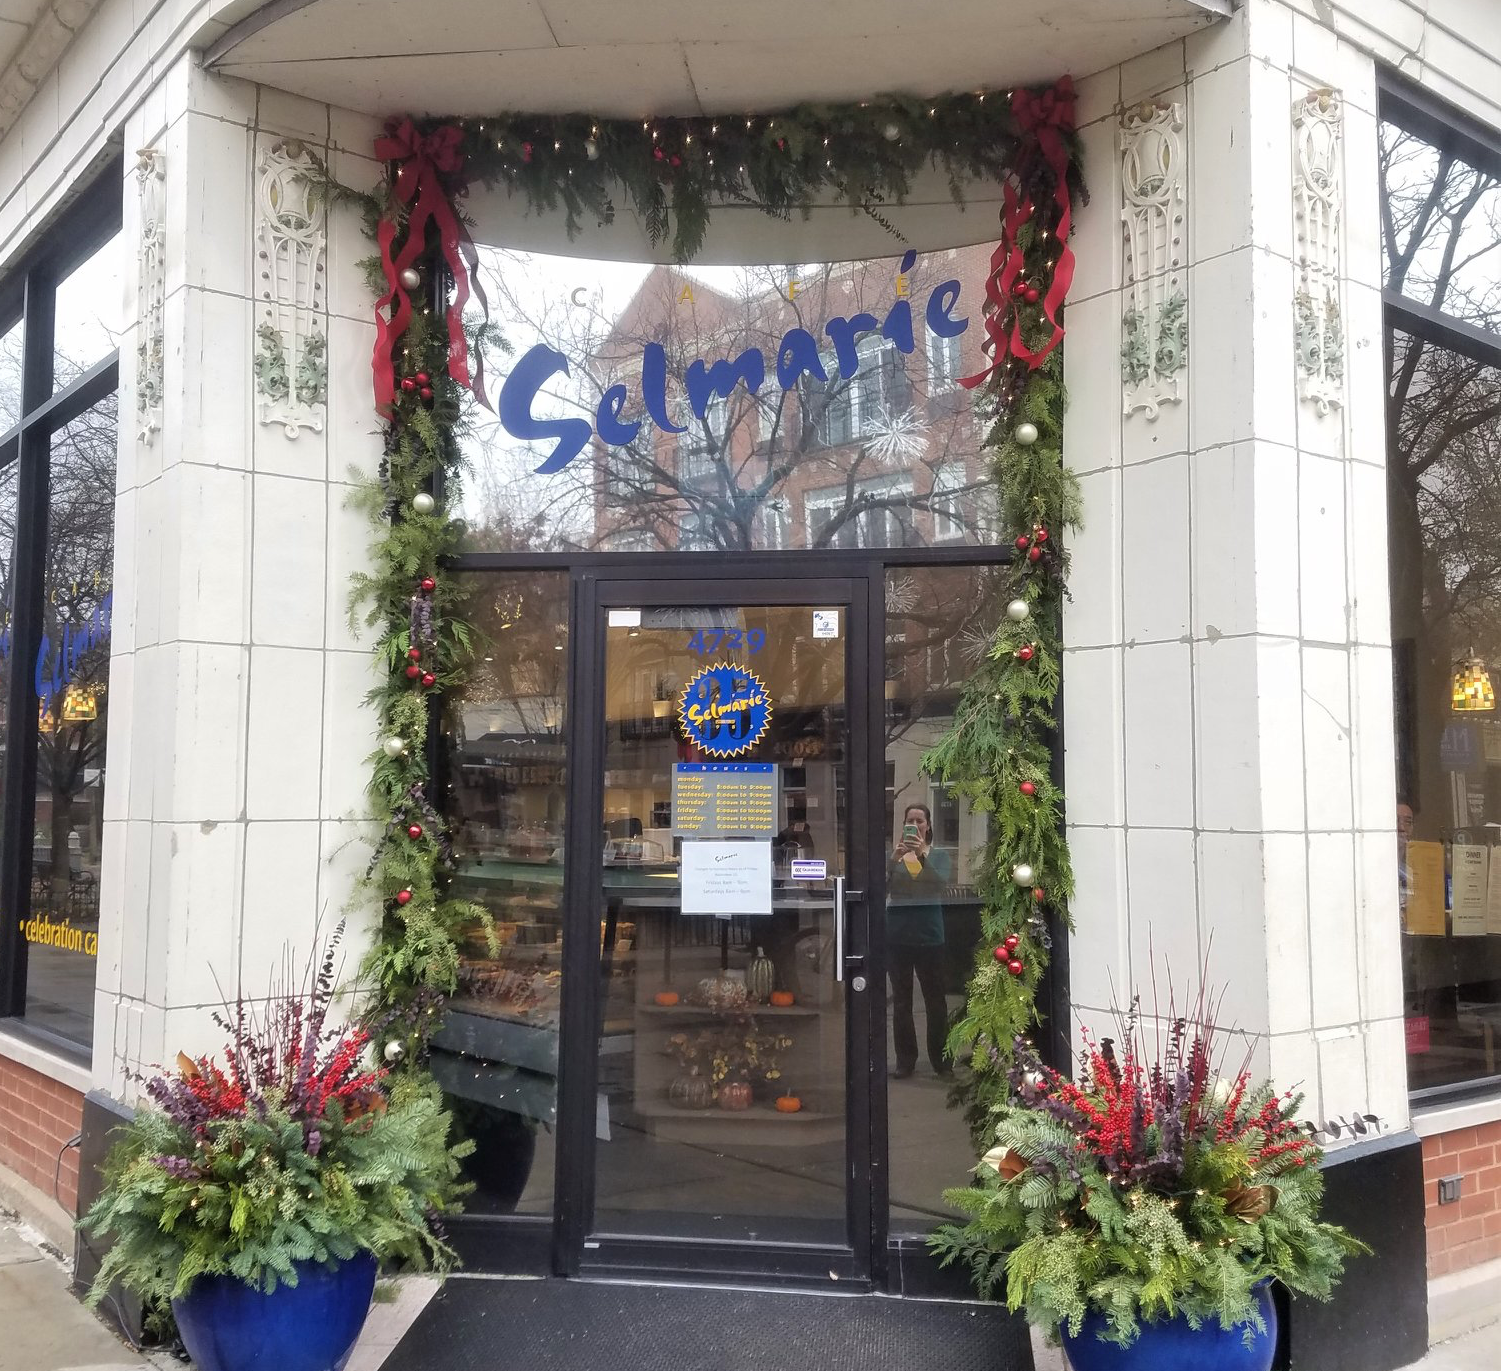 A cafe's door decorated with greenery for Christmas.